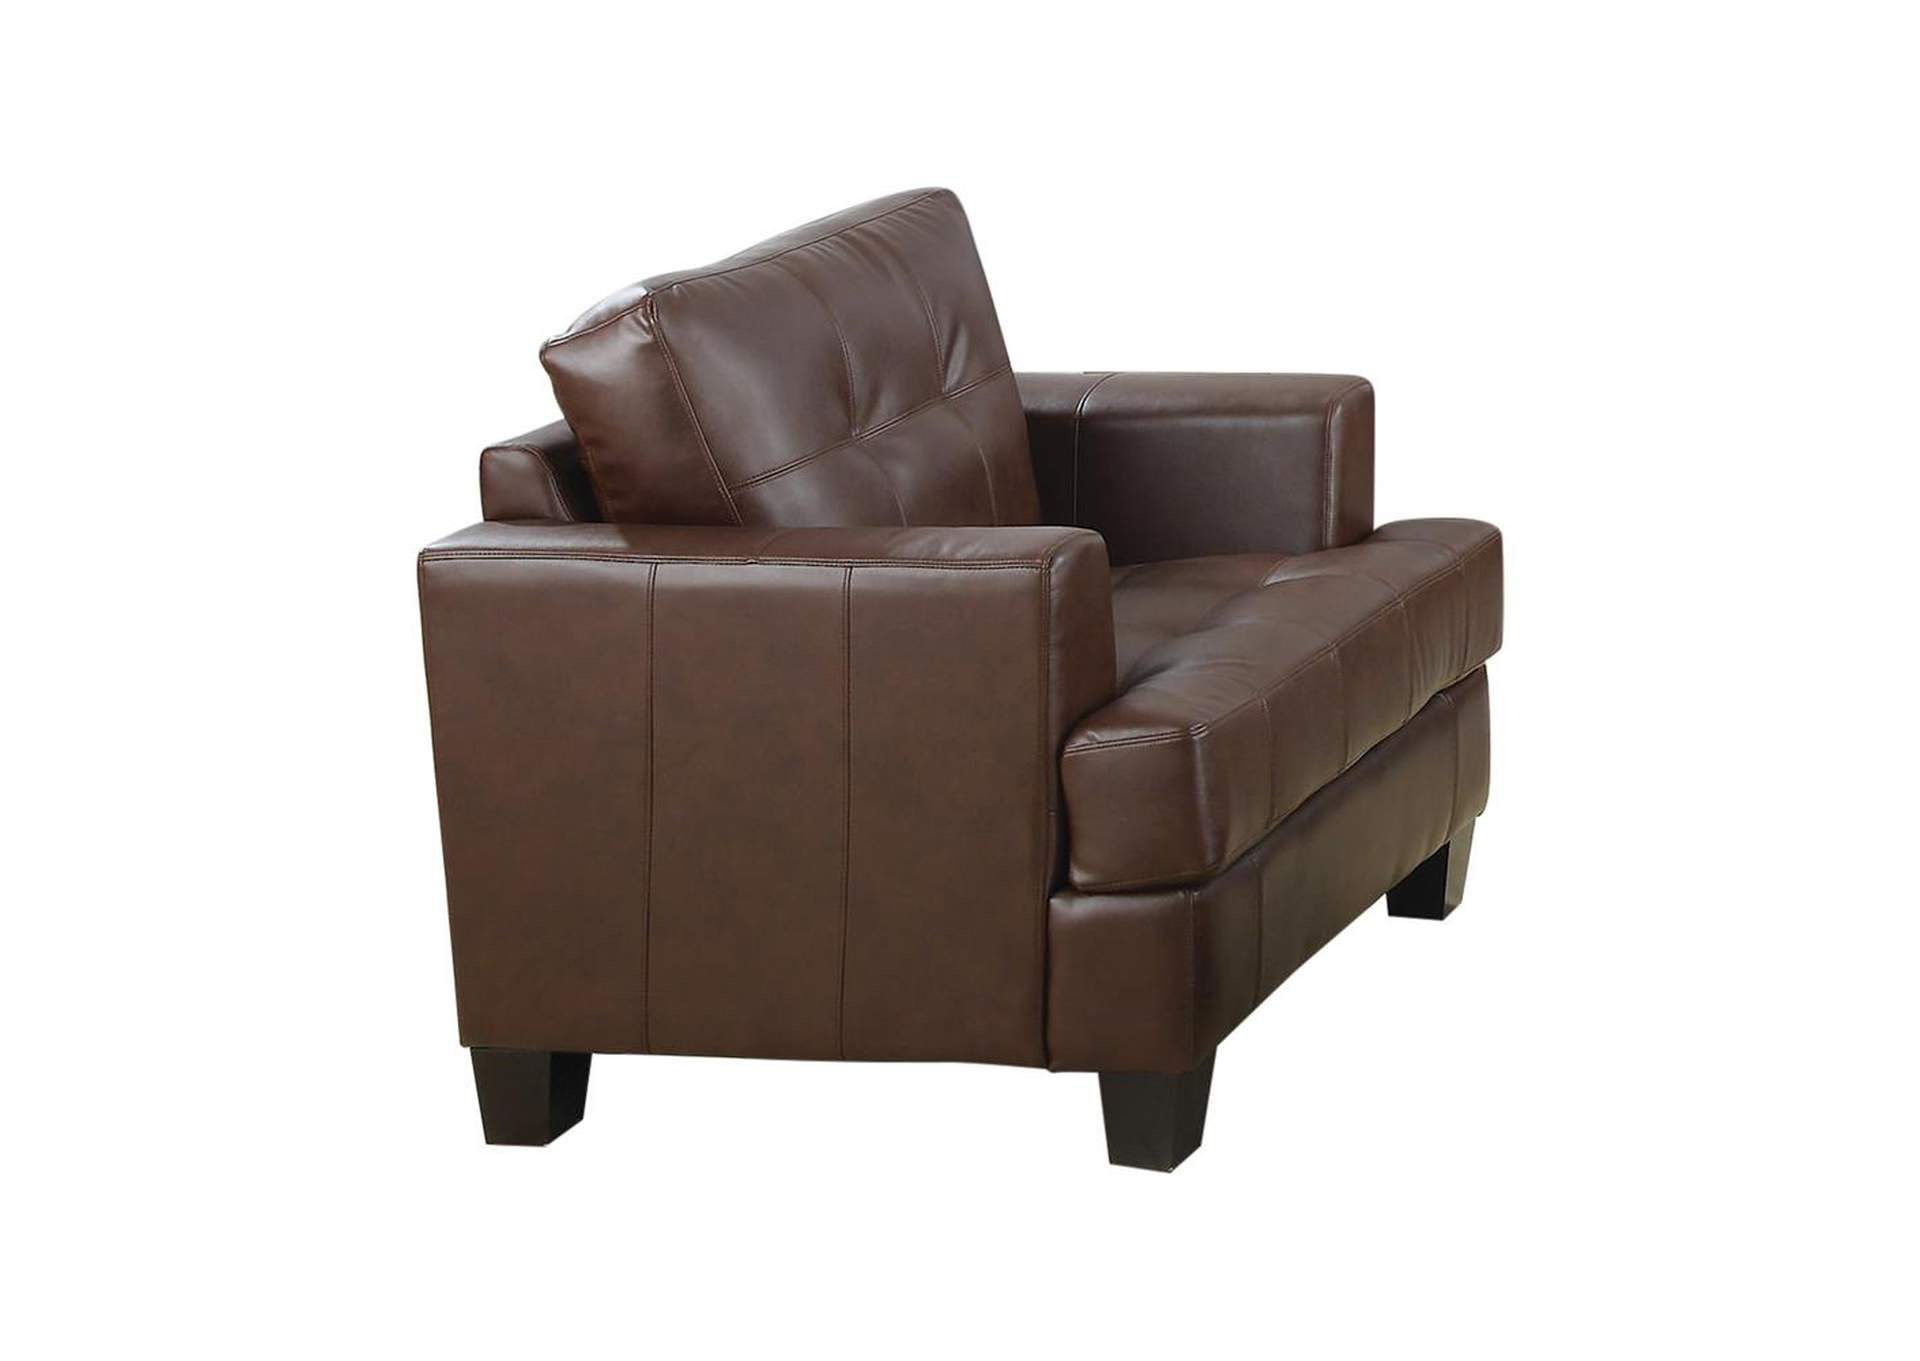 Samuel Upholstered Chair Dark Brown,Coaster Furniture